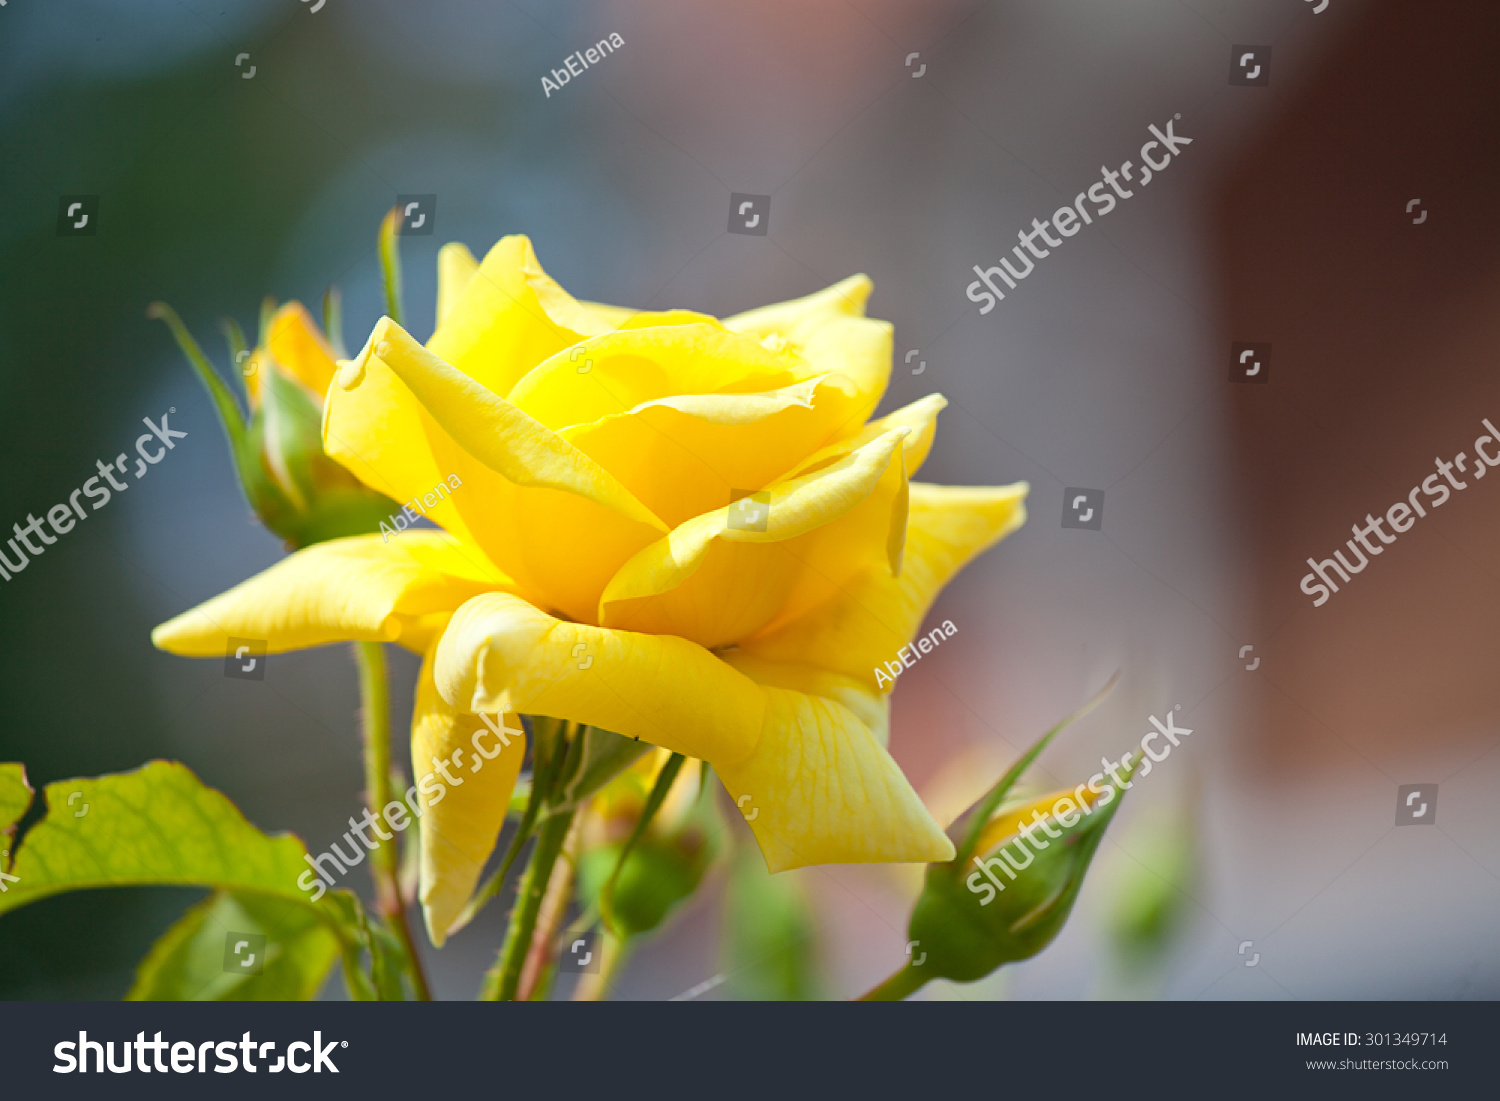 Bunch of beautiful lovely yellow roses flowers and plants ez canvas id 301349714 izmirmasajfo